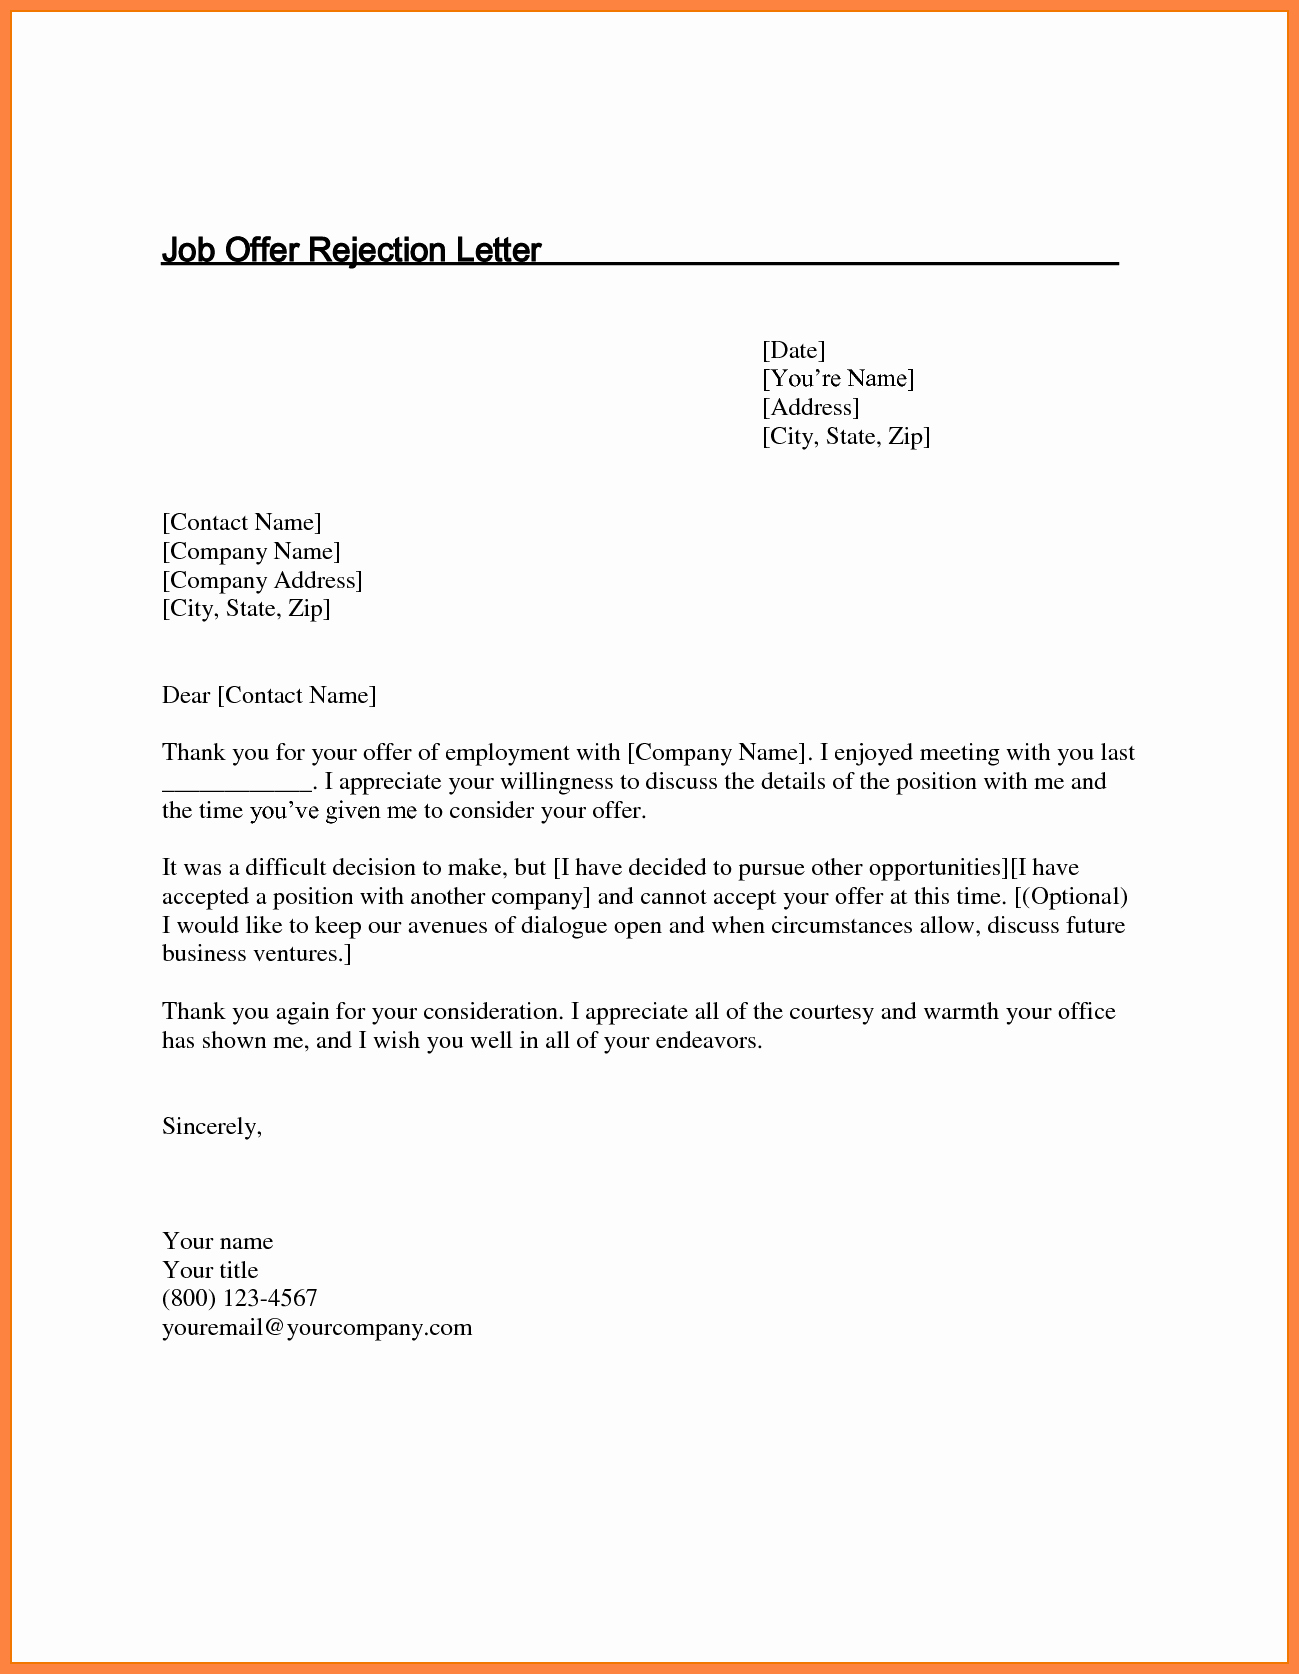 Job Offer Thank You Letter Beautiful 5 Job Offer Rejection Letter